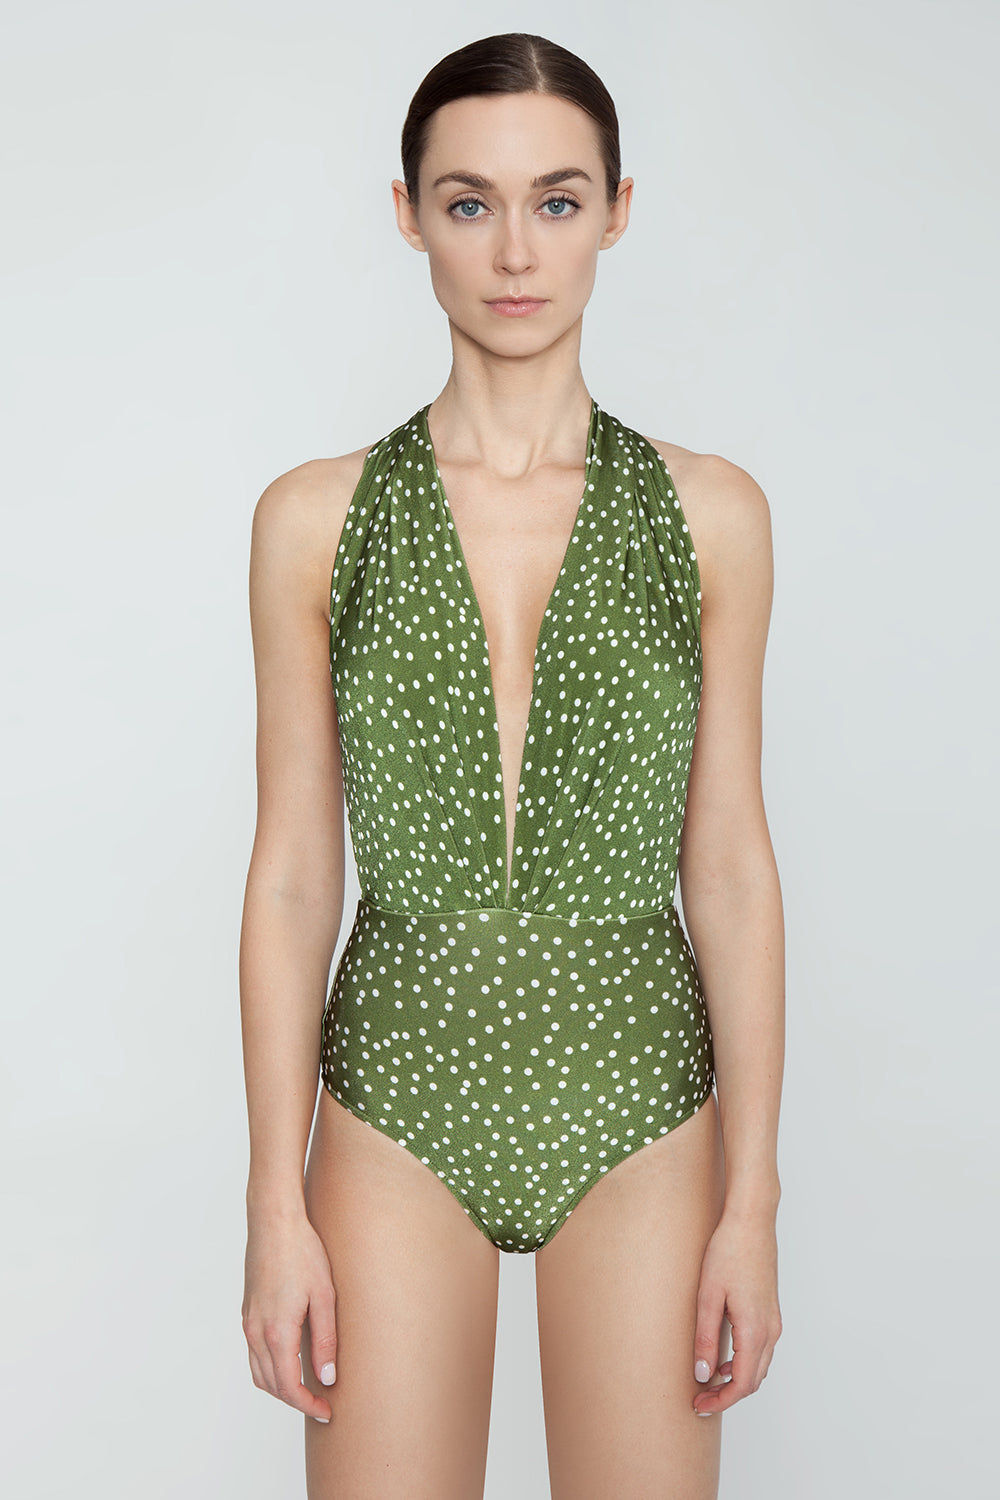 ADRIANA DEGREAS Plunging Halter Neck One Piece Swimsuit - Mille Punti Army Green Polka Dot Print One Piece | Mille Punti Army Green Polka Dot Print| ADRIANA DEGREAS Plunging Halter Neck One Piece Swimsuit - Mille Punti Army Green Polka Dot Print Plunging halter neck one piece swimsuit in army green polka dot print. Inspired by 1950s pin-up style, the halter neckline features flattering pleats and extra coverage at underarms. Fixed halter strap connects behind neck to wide draped straps Front View